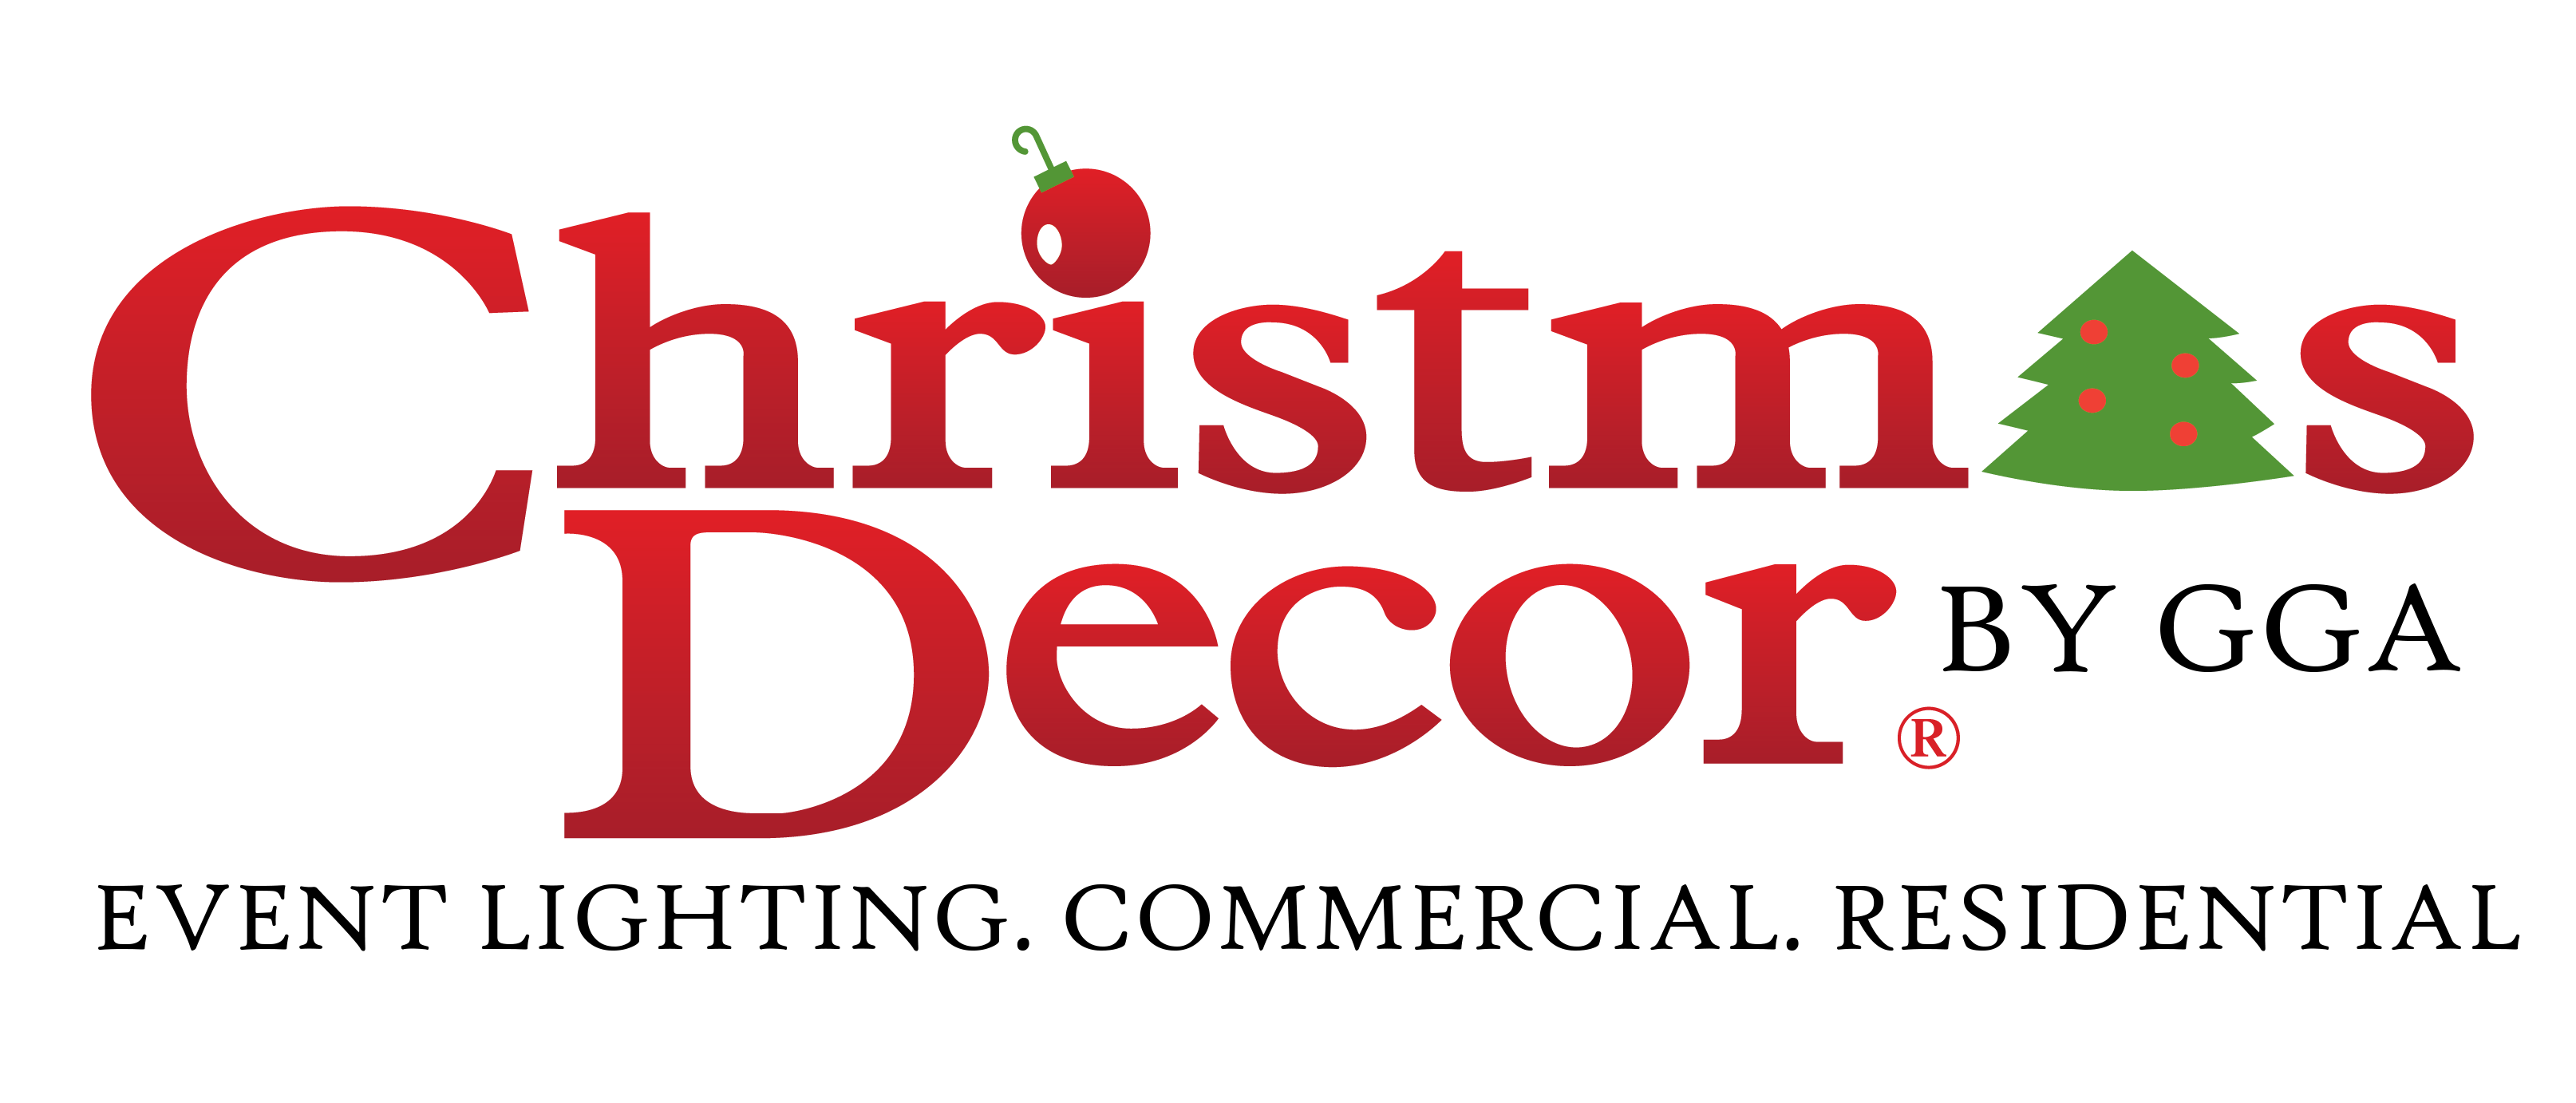 CHRISTMAS DECOR LOGO updated